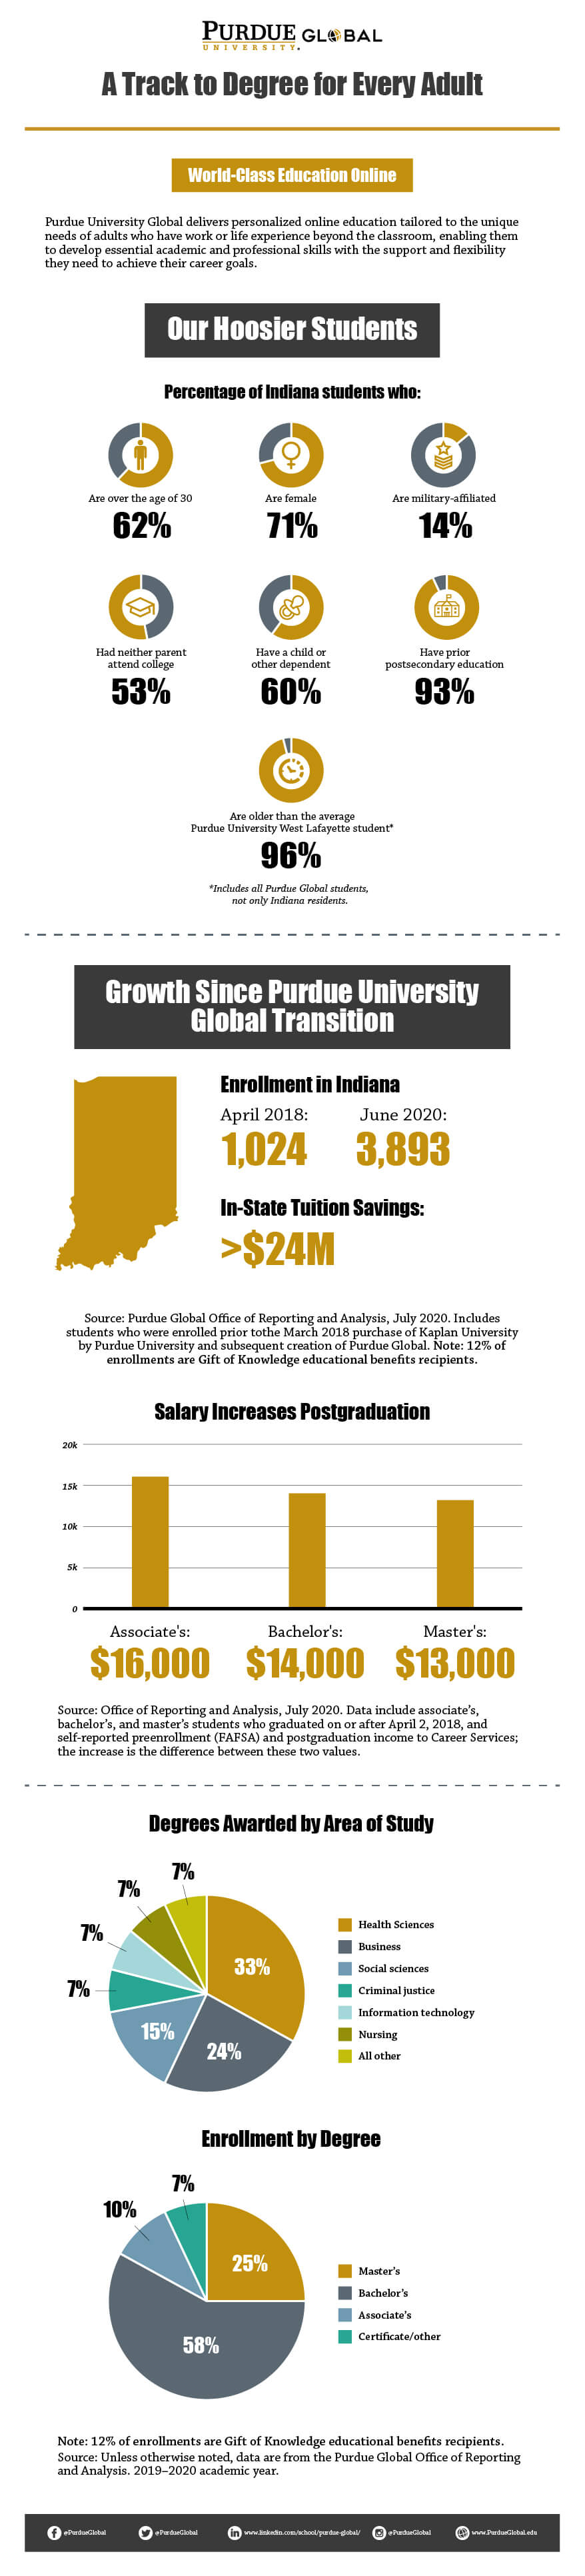 Infographic depicting Purdue Global facts and statistics about Indiana students